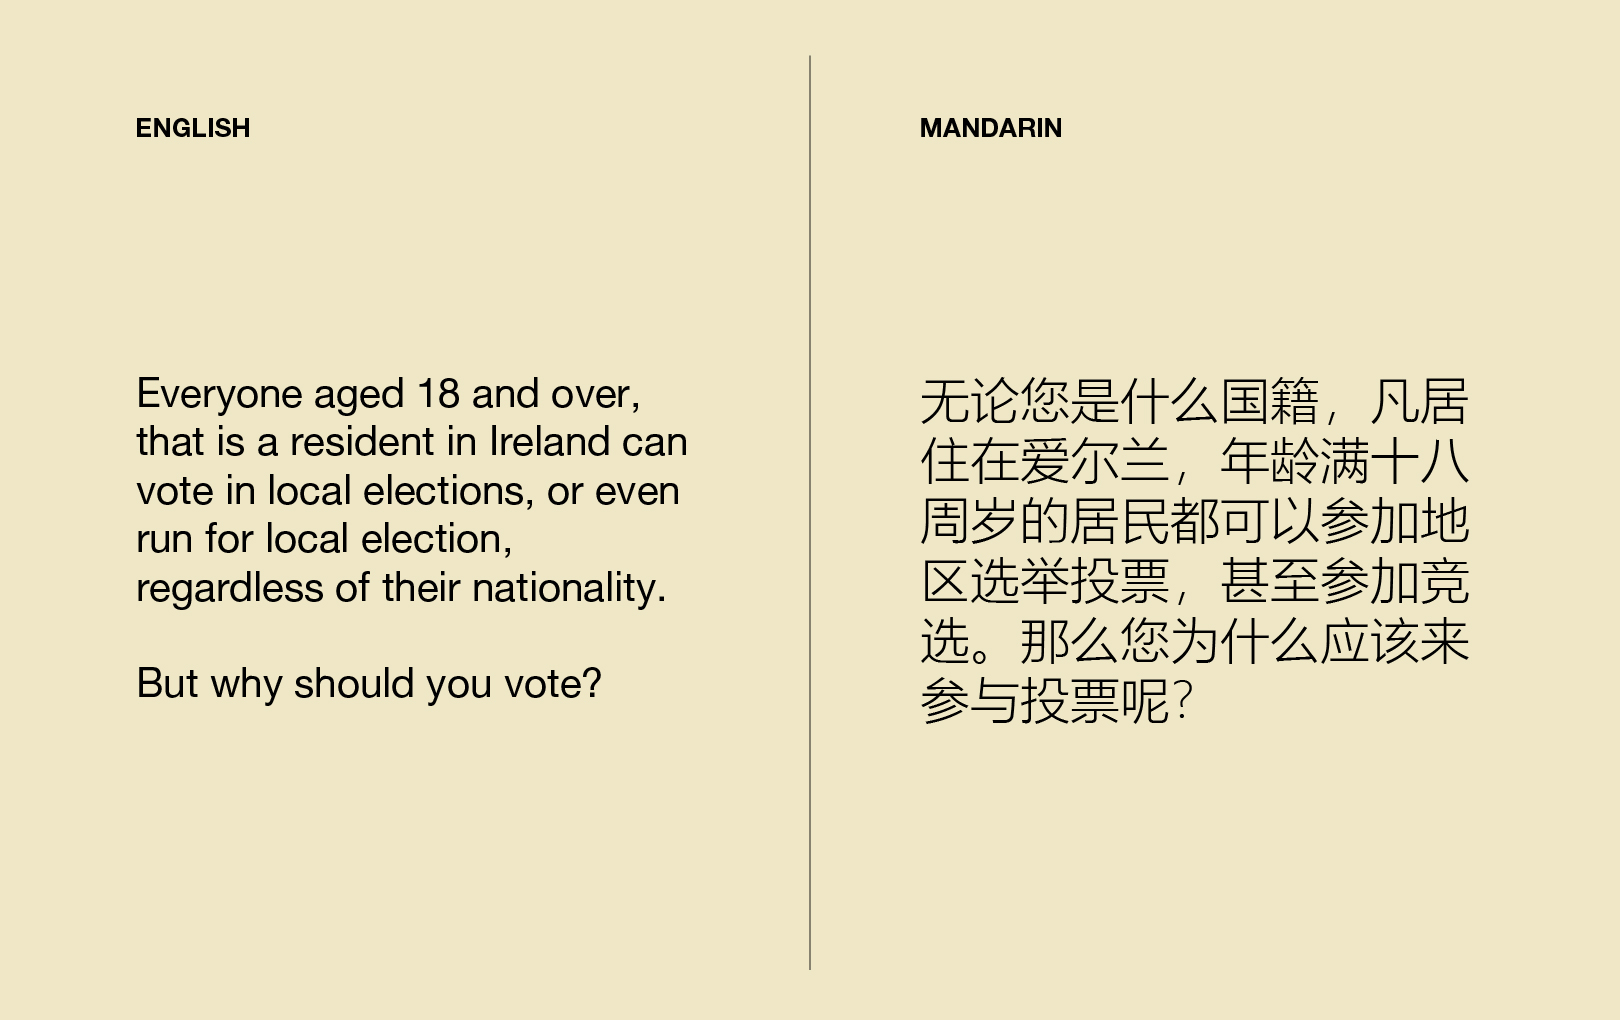 English to Mandarin Translation - Political Participation Campaign - Immigrant Council of Ireland